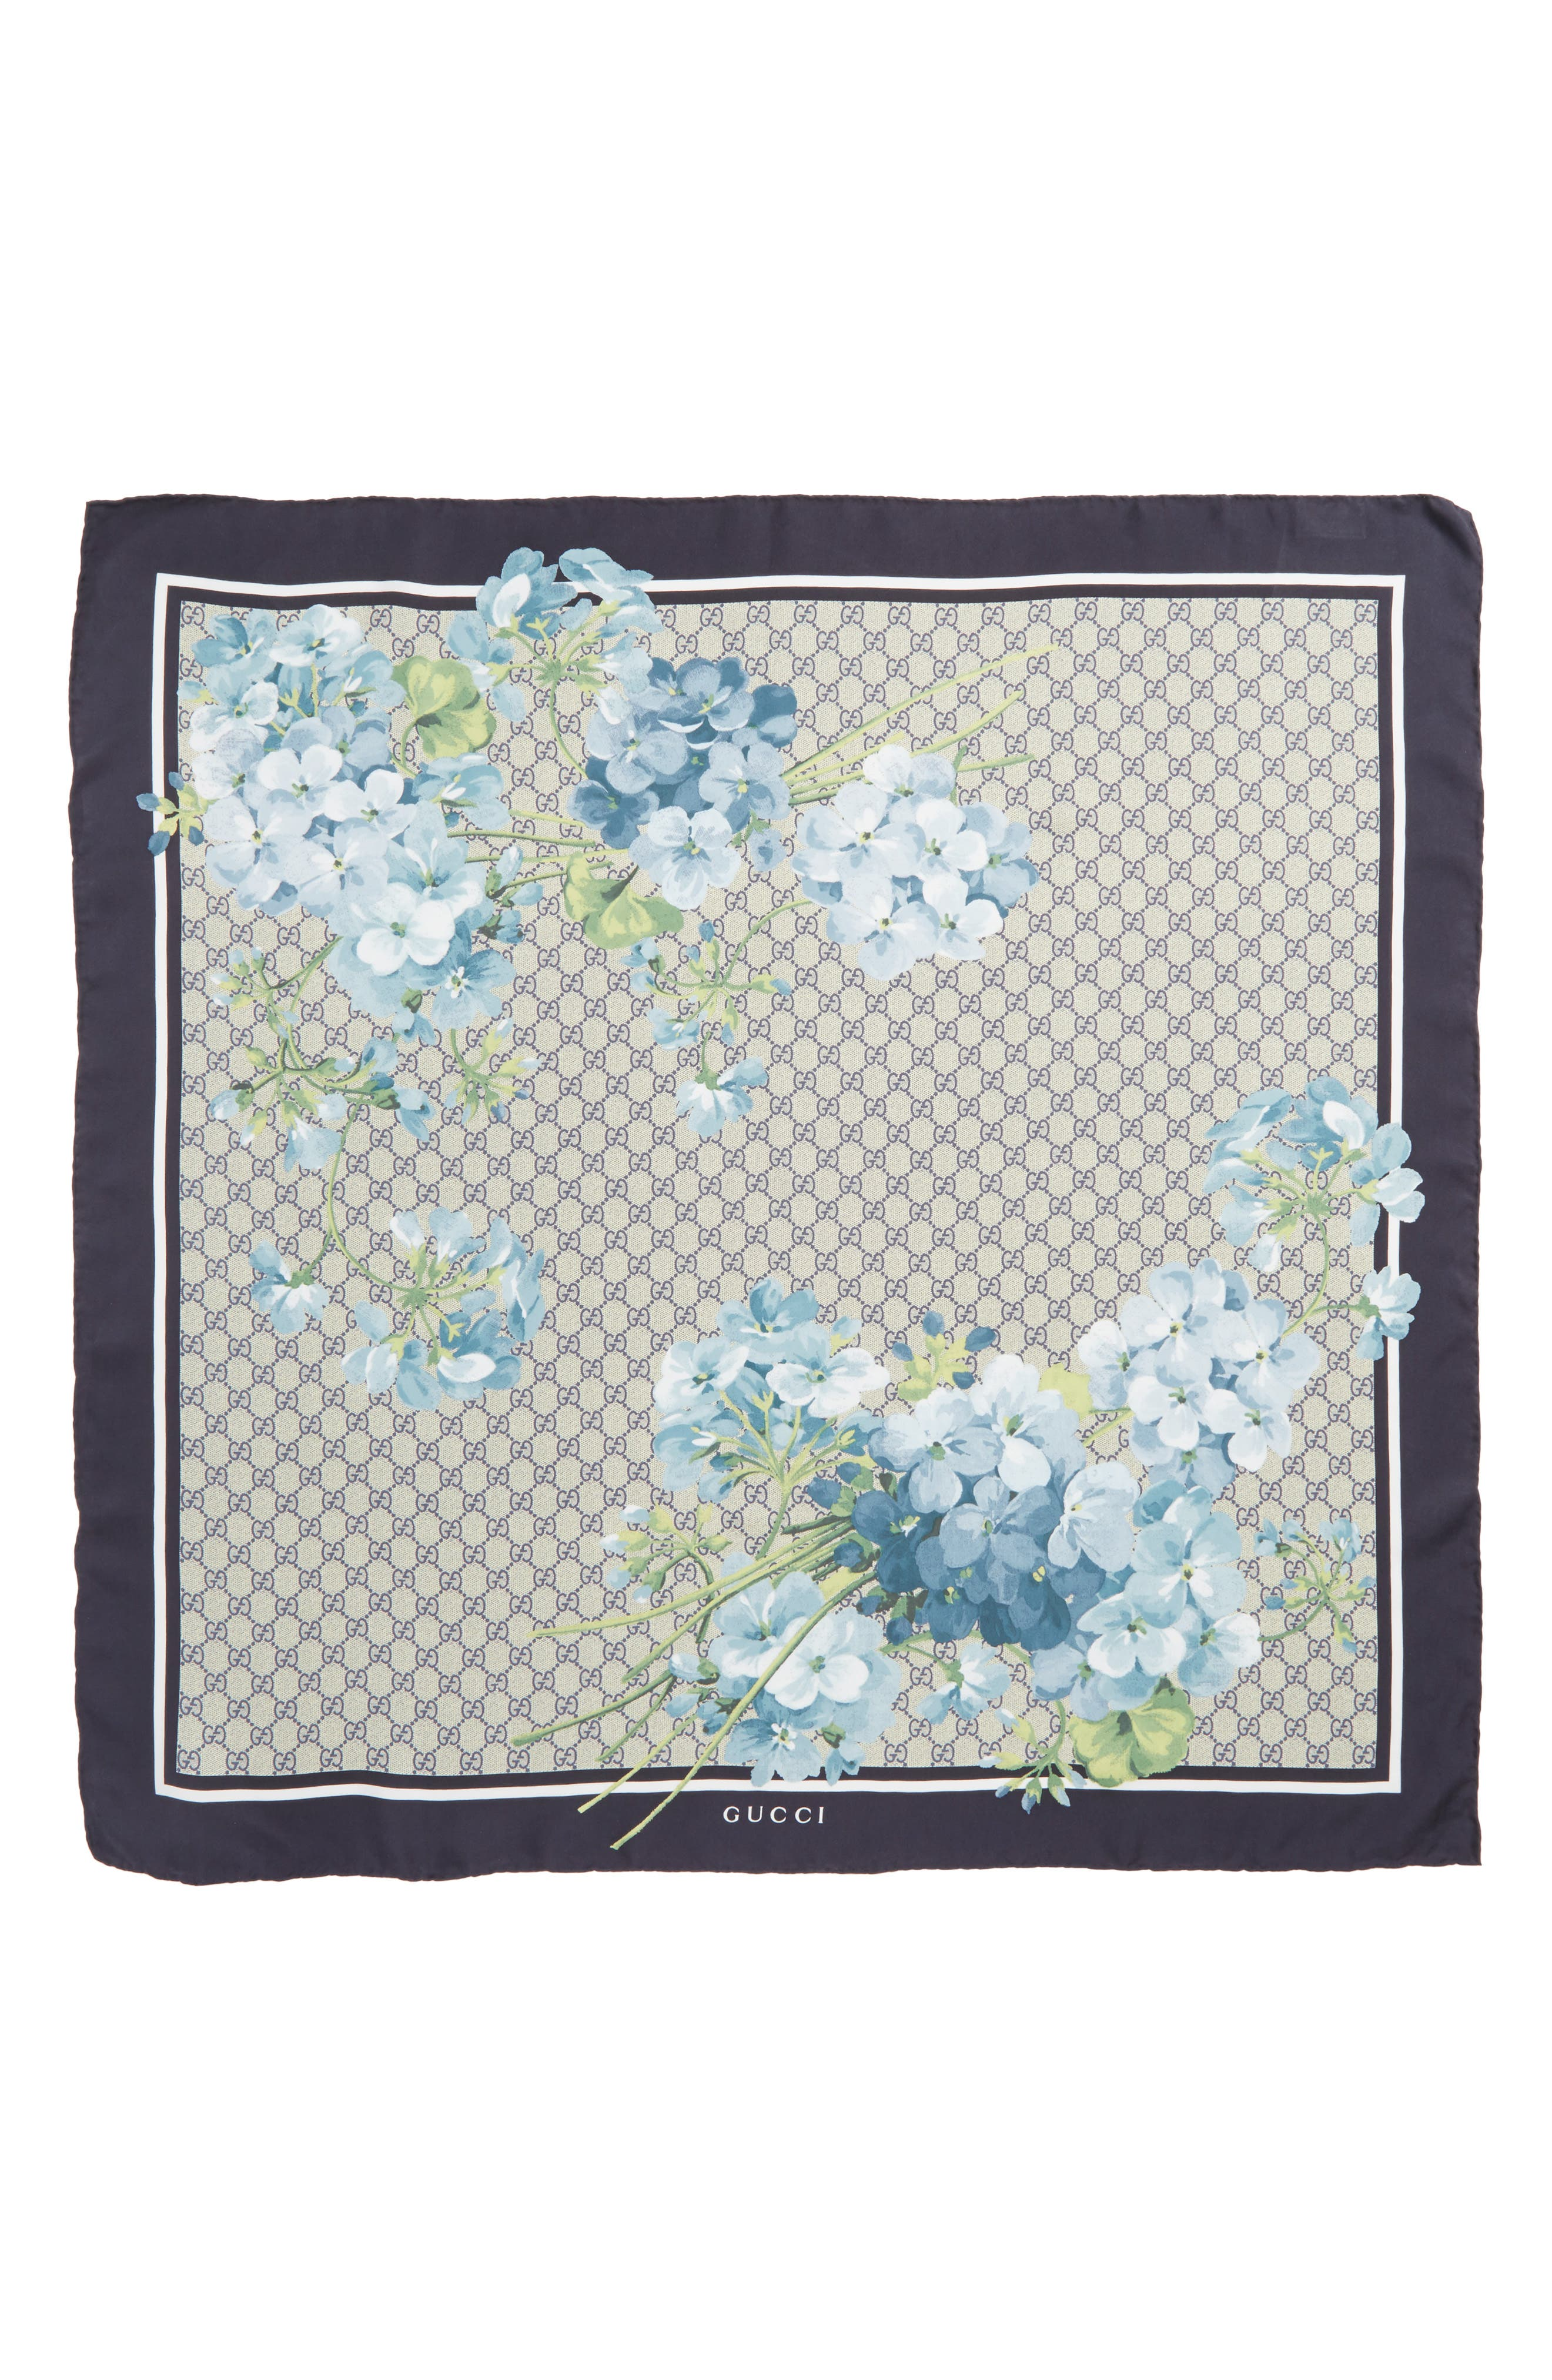 GUCCI,                             GG Blooms Foulard Scarf,                             Alternate thumbnail 2, color,                             400